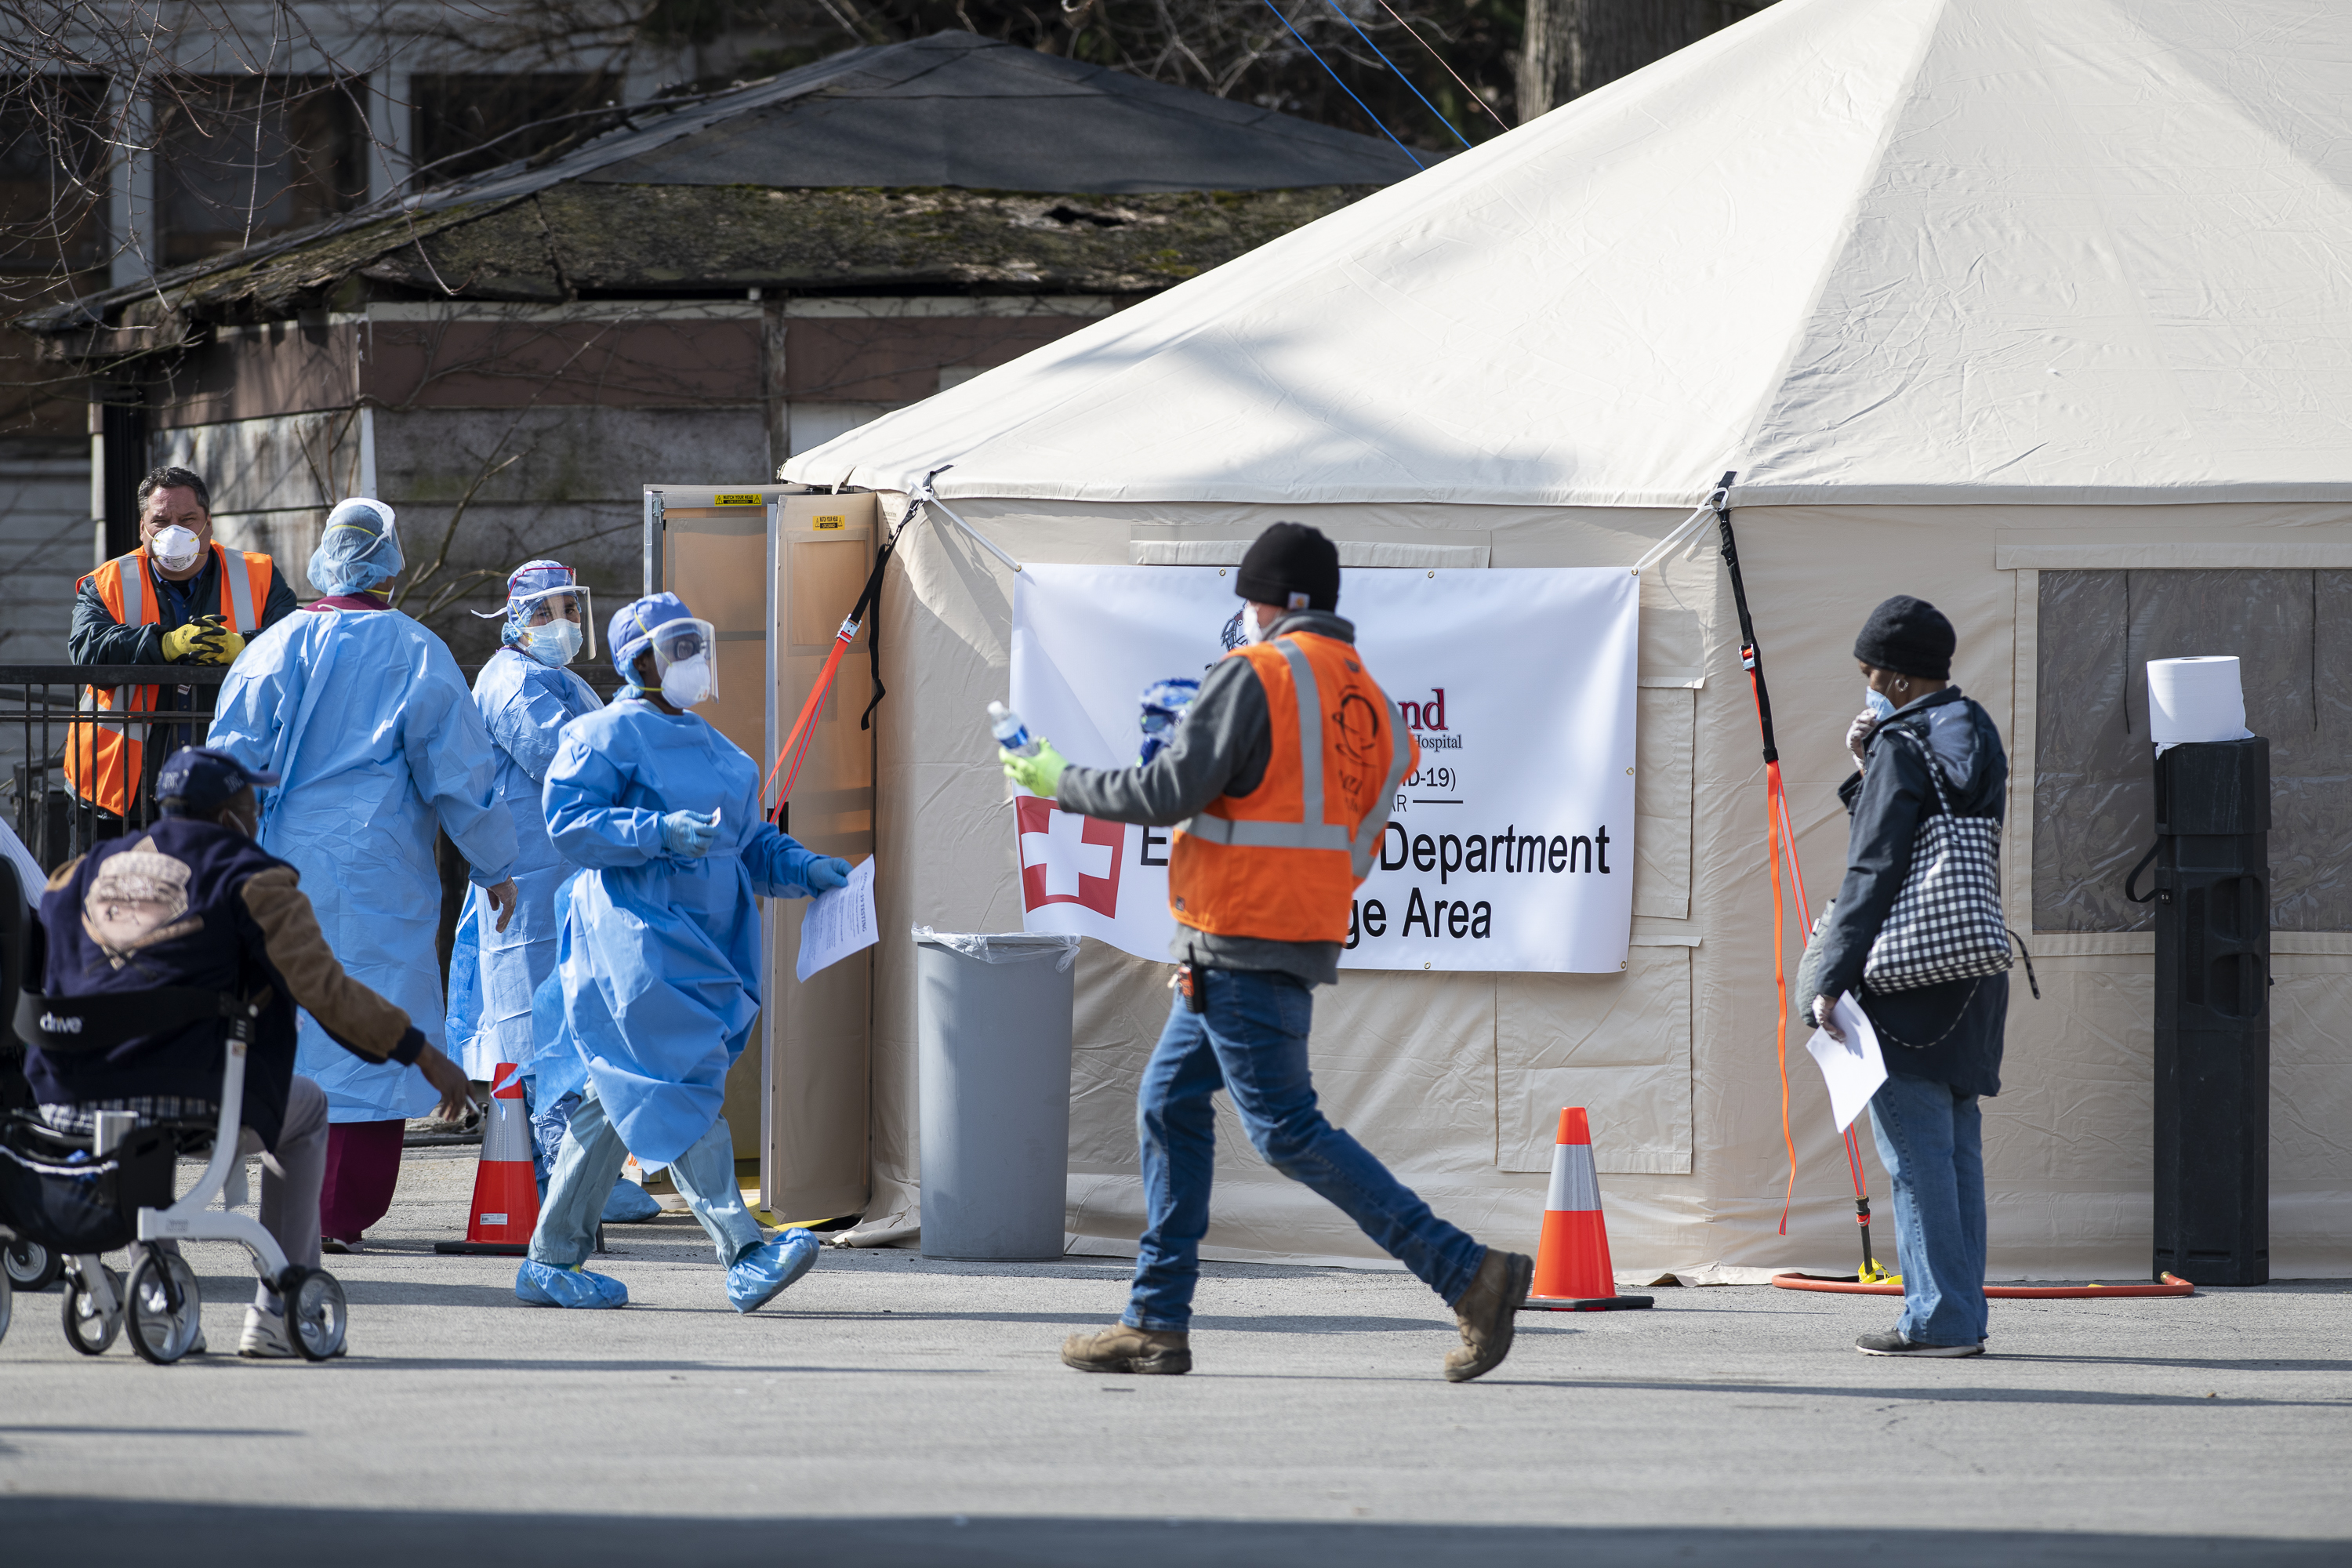 People wait in line to be tested for coronavirus at one of Roseland Community Hospital's testing tents, Friday, April 3, 2020.